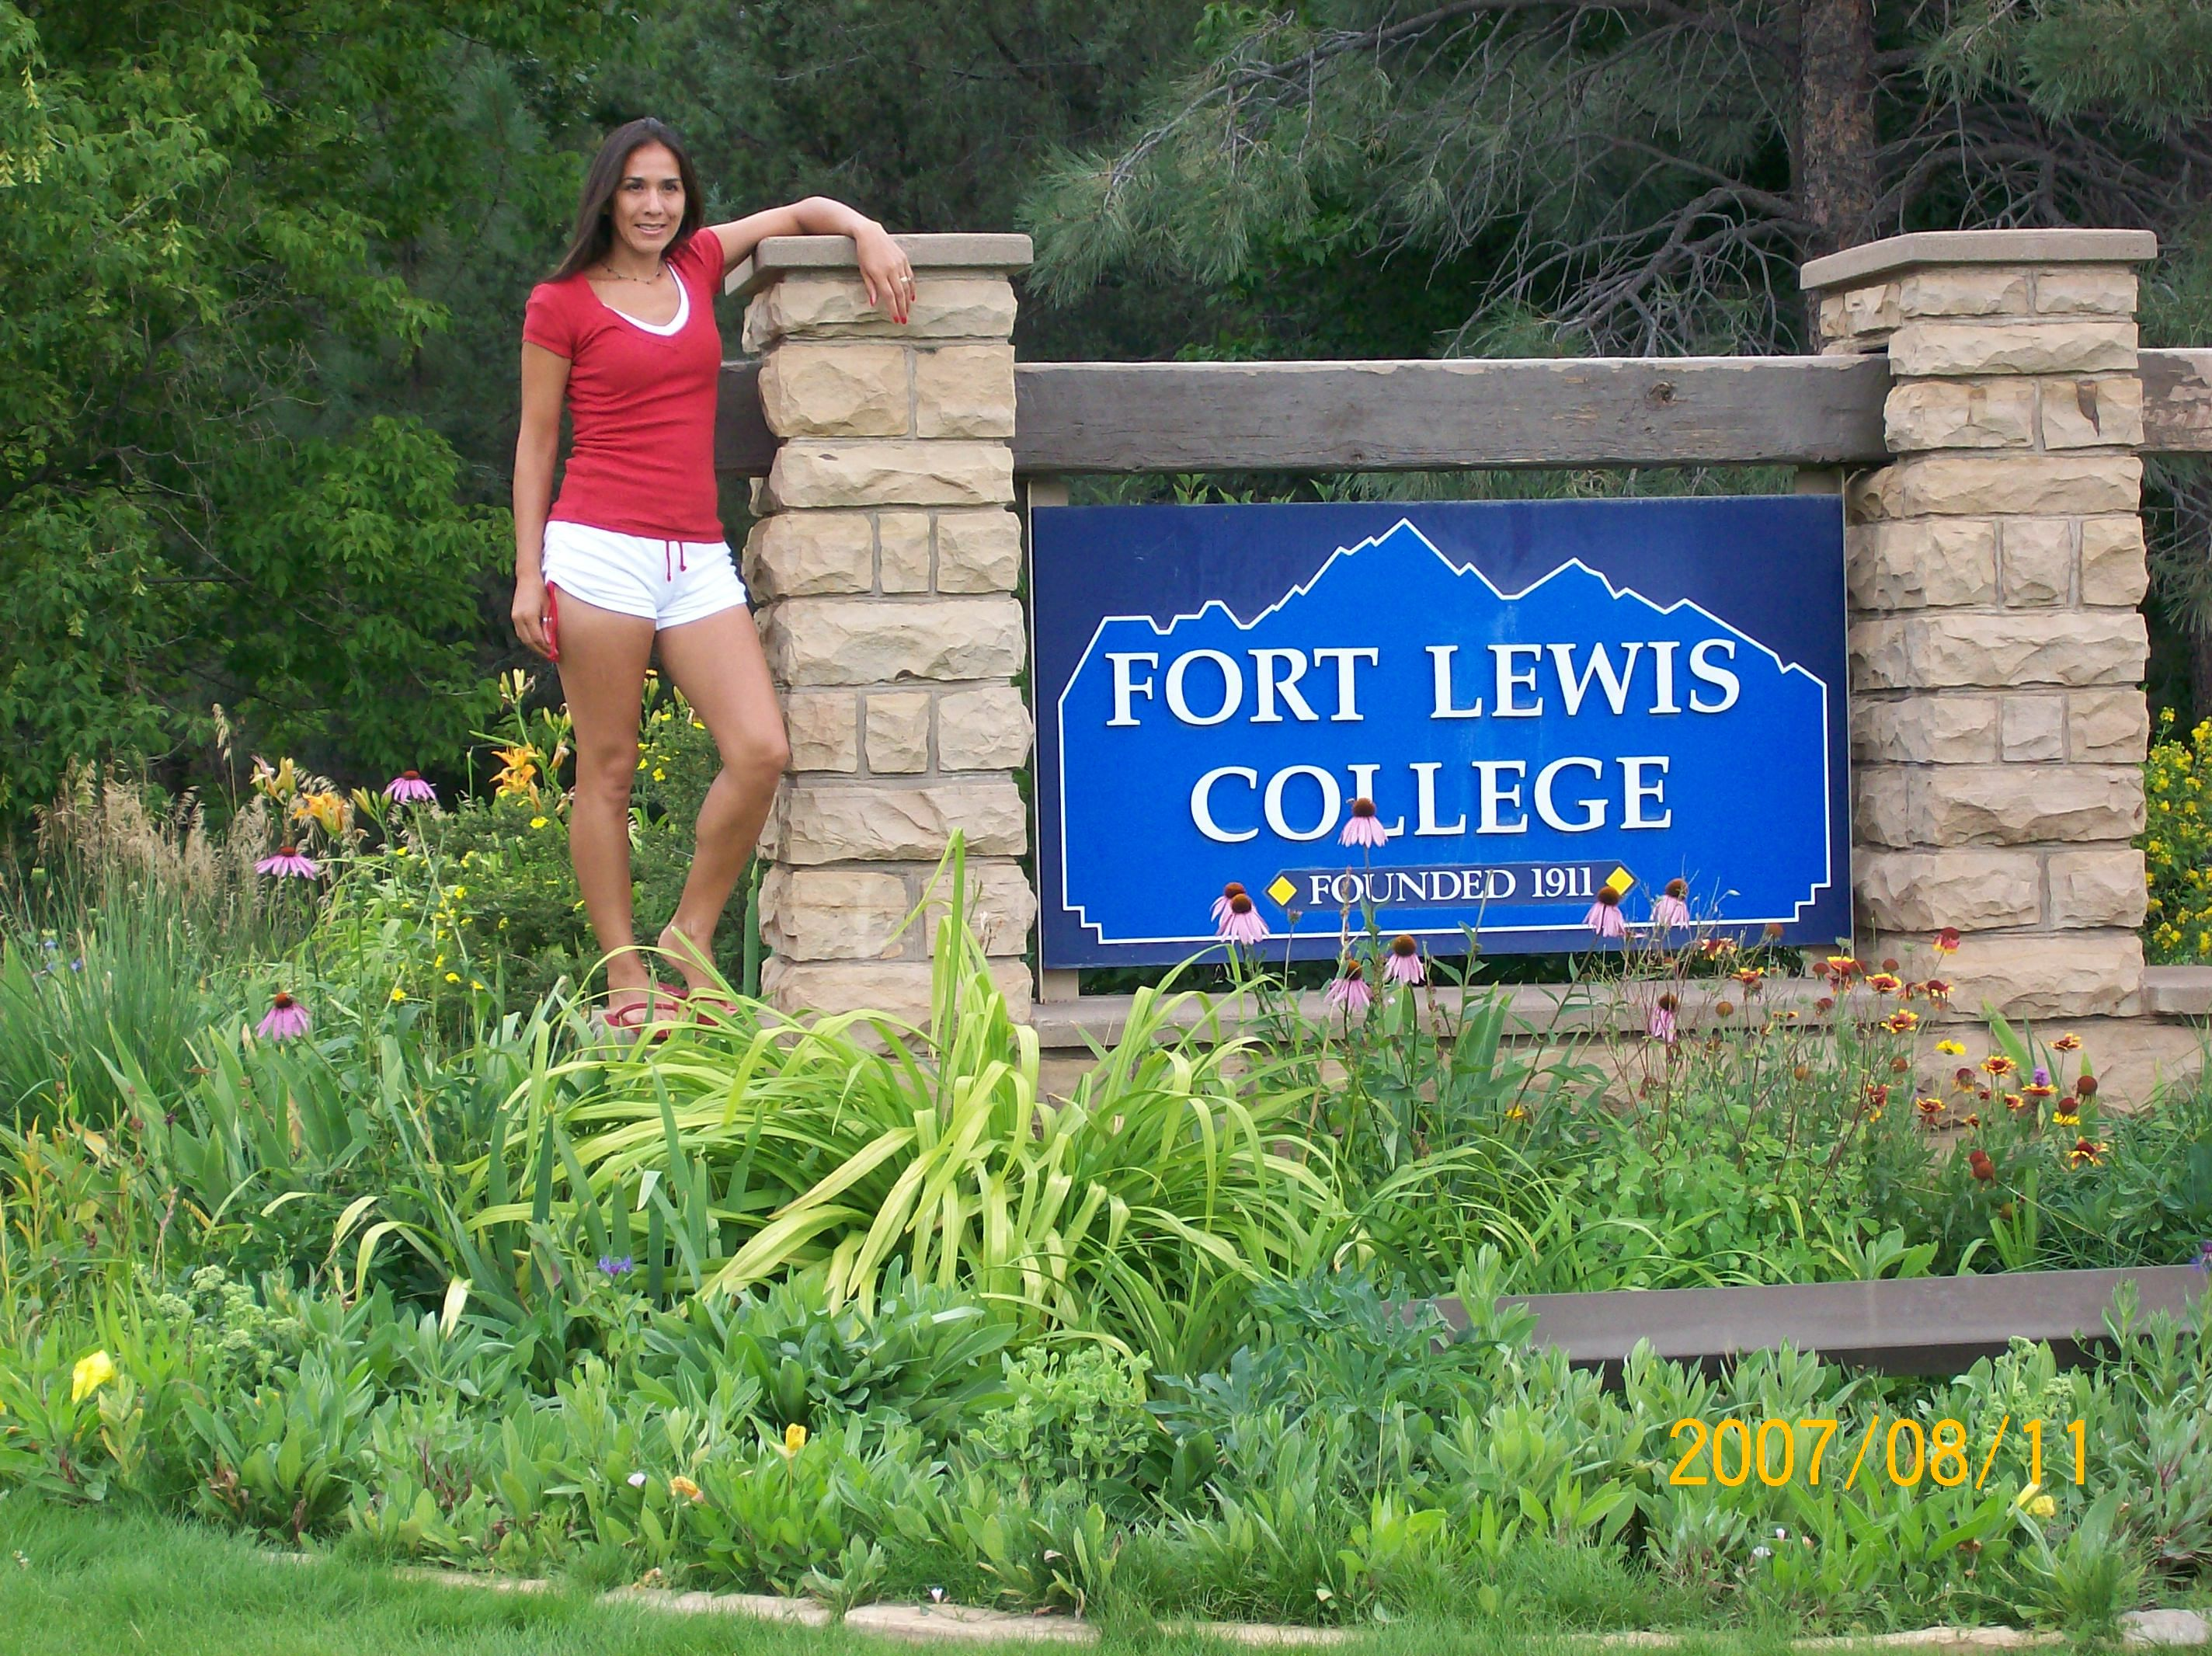 Fort Lewis College Campus in Durango, CO